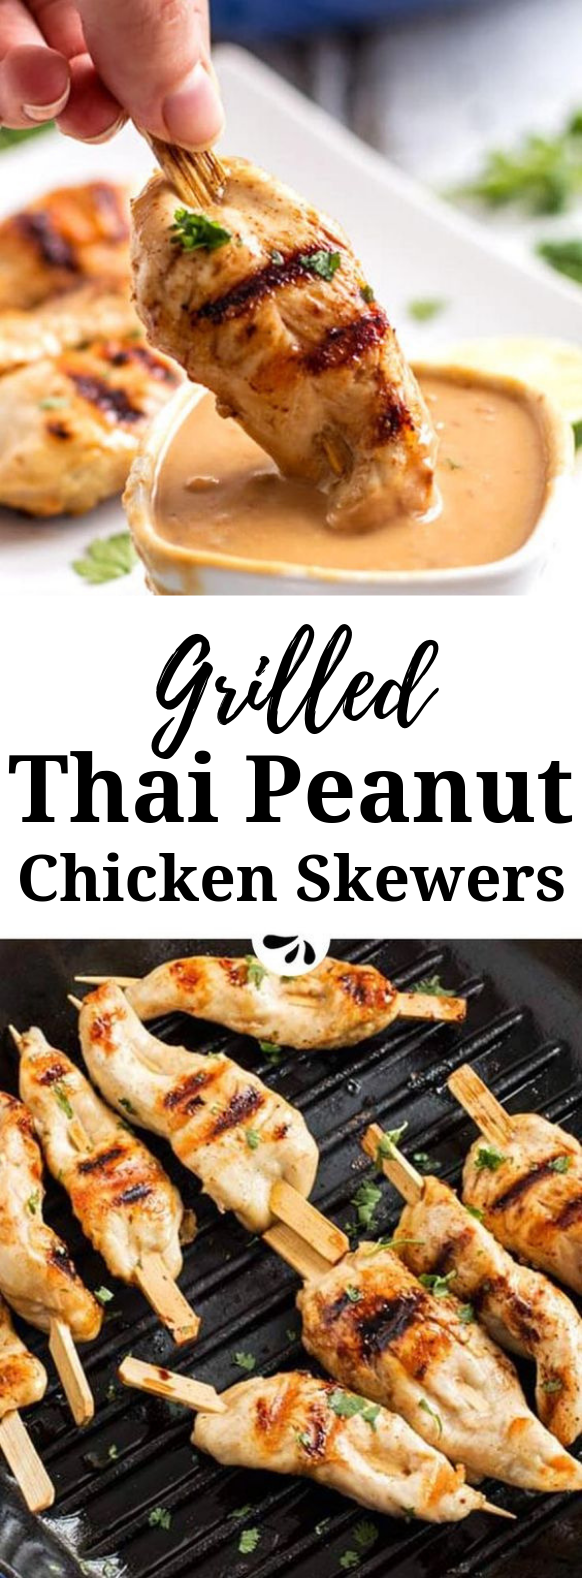 Thai Peanut Chicken Skewers #Dinner #Chicken